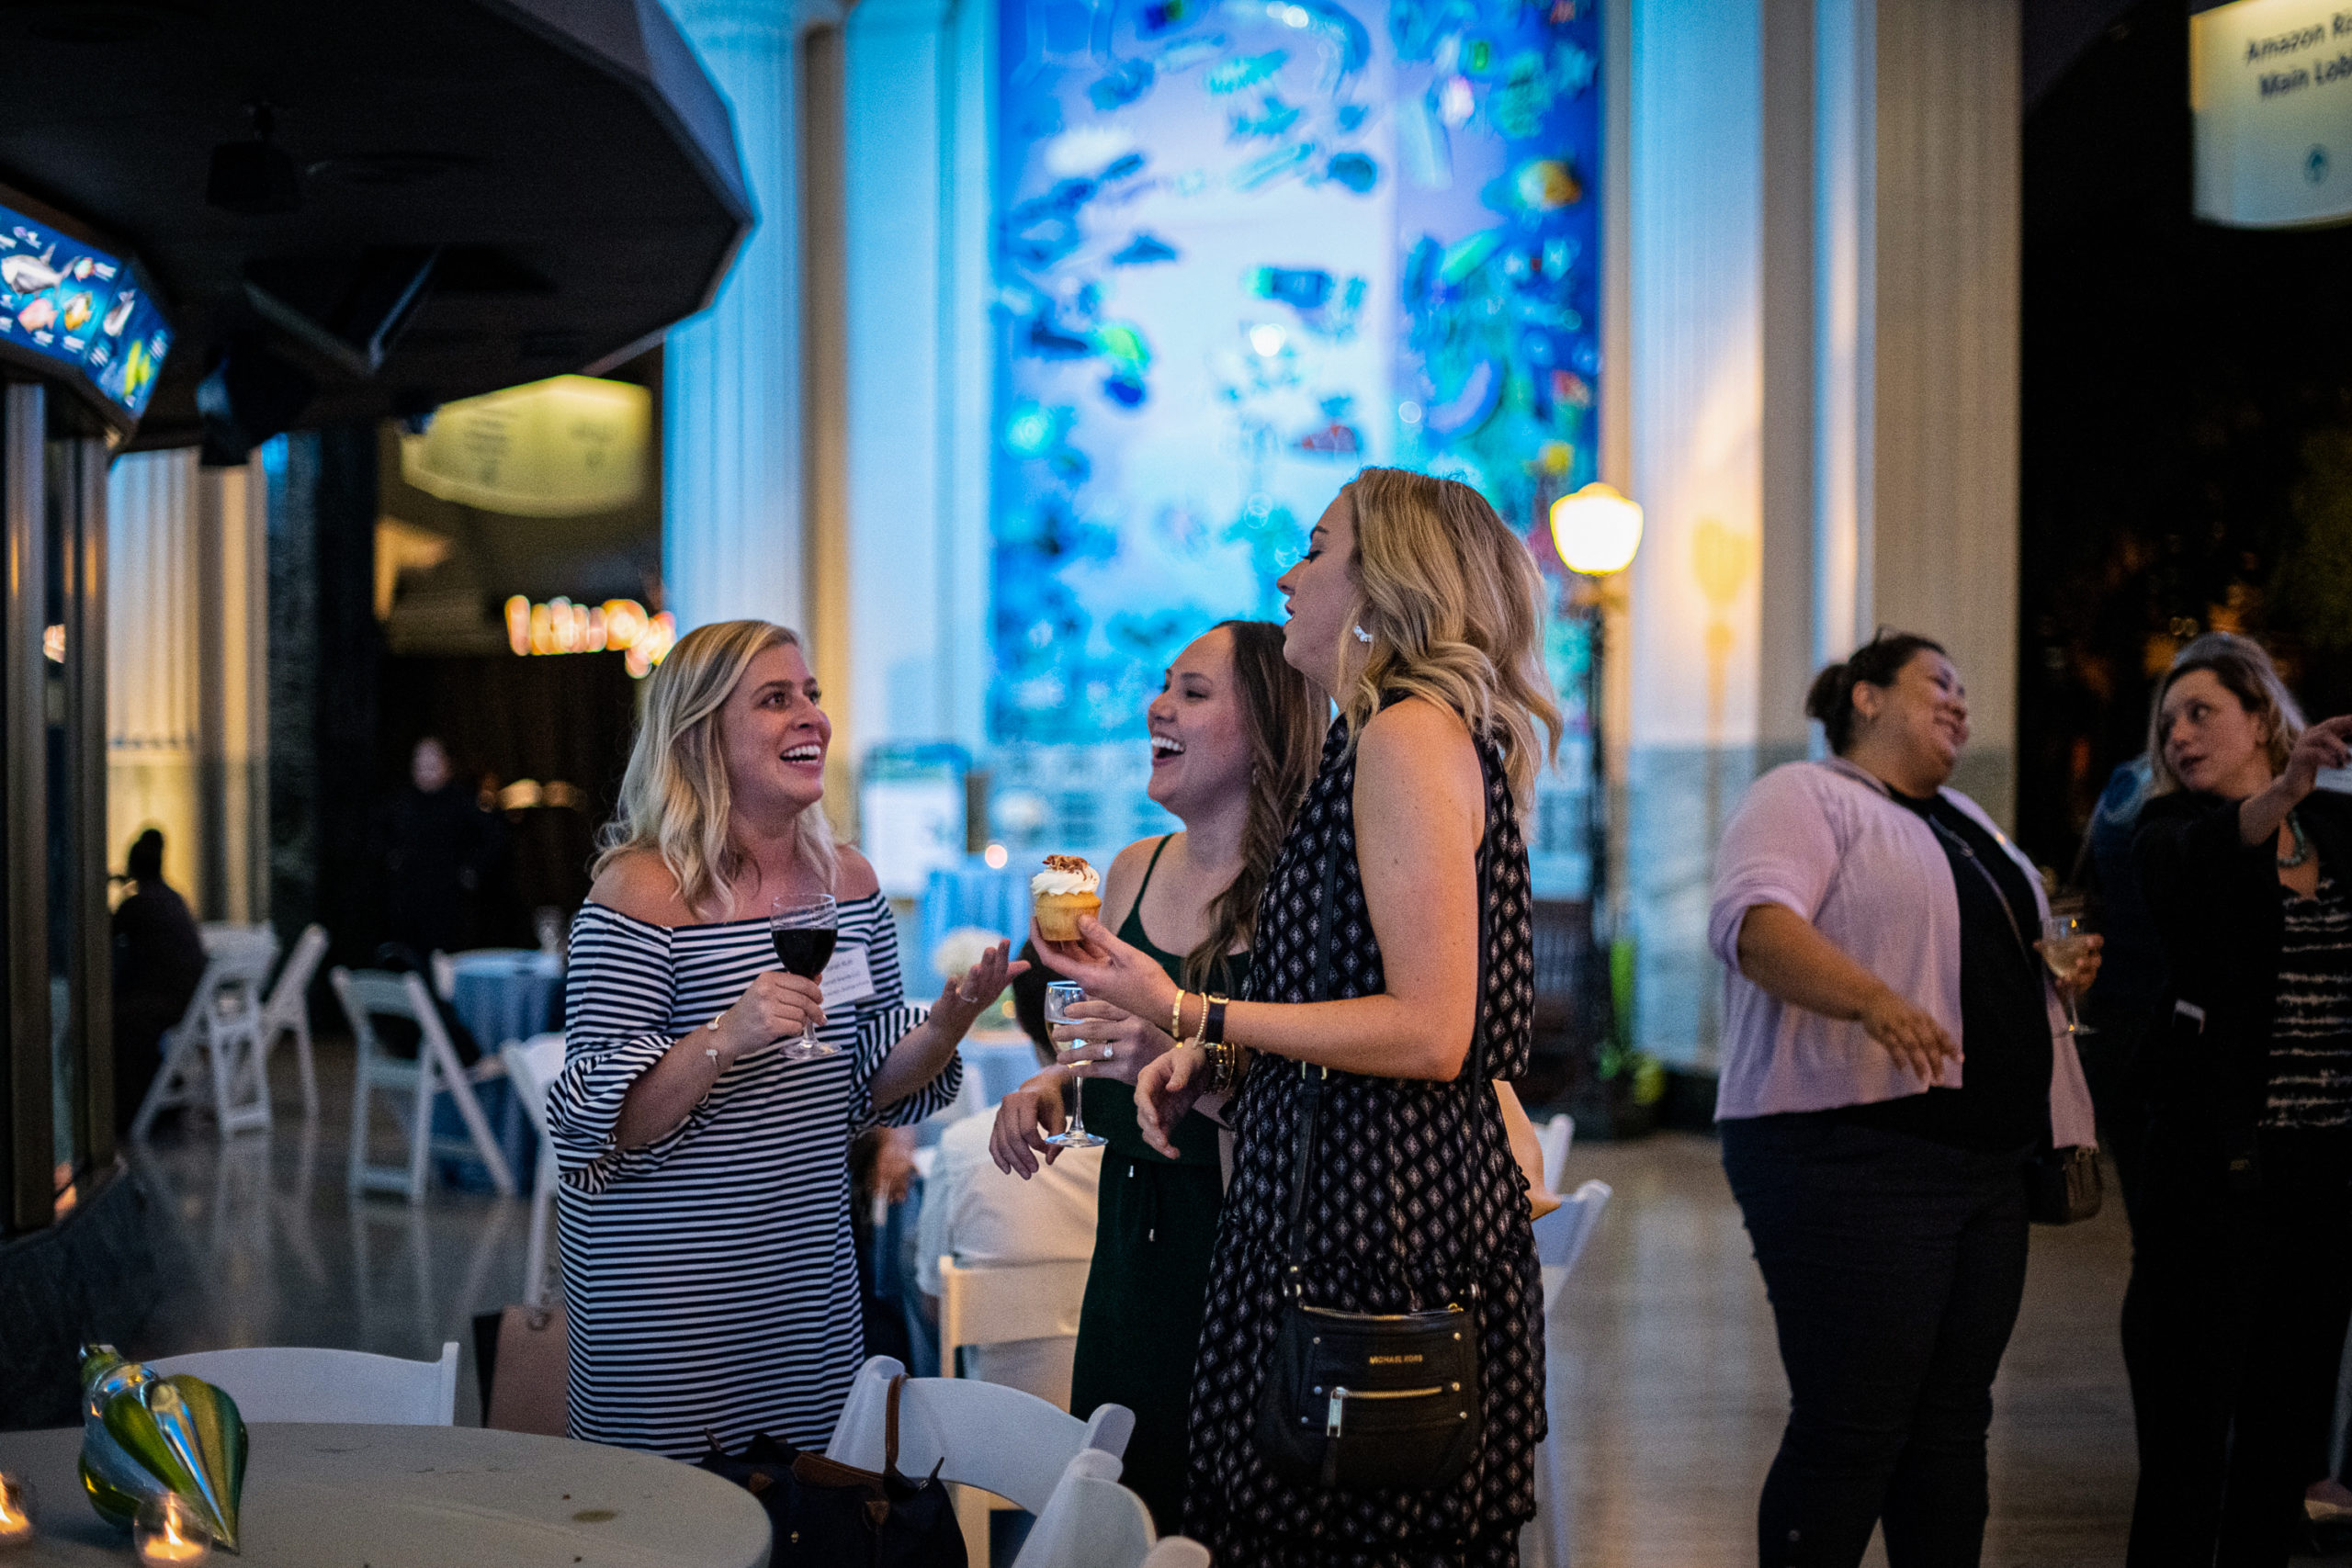 Guests enjoying an event at Shedd Aquarium